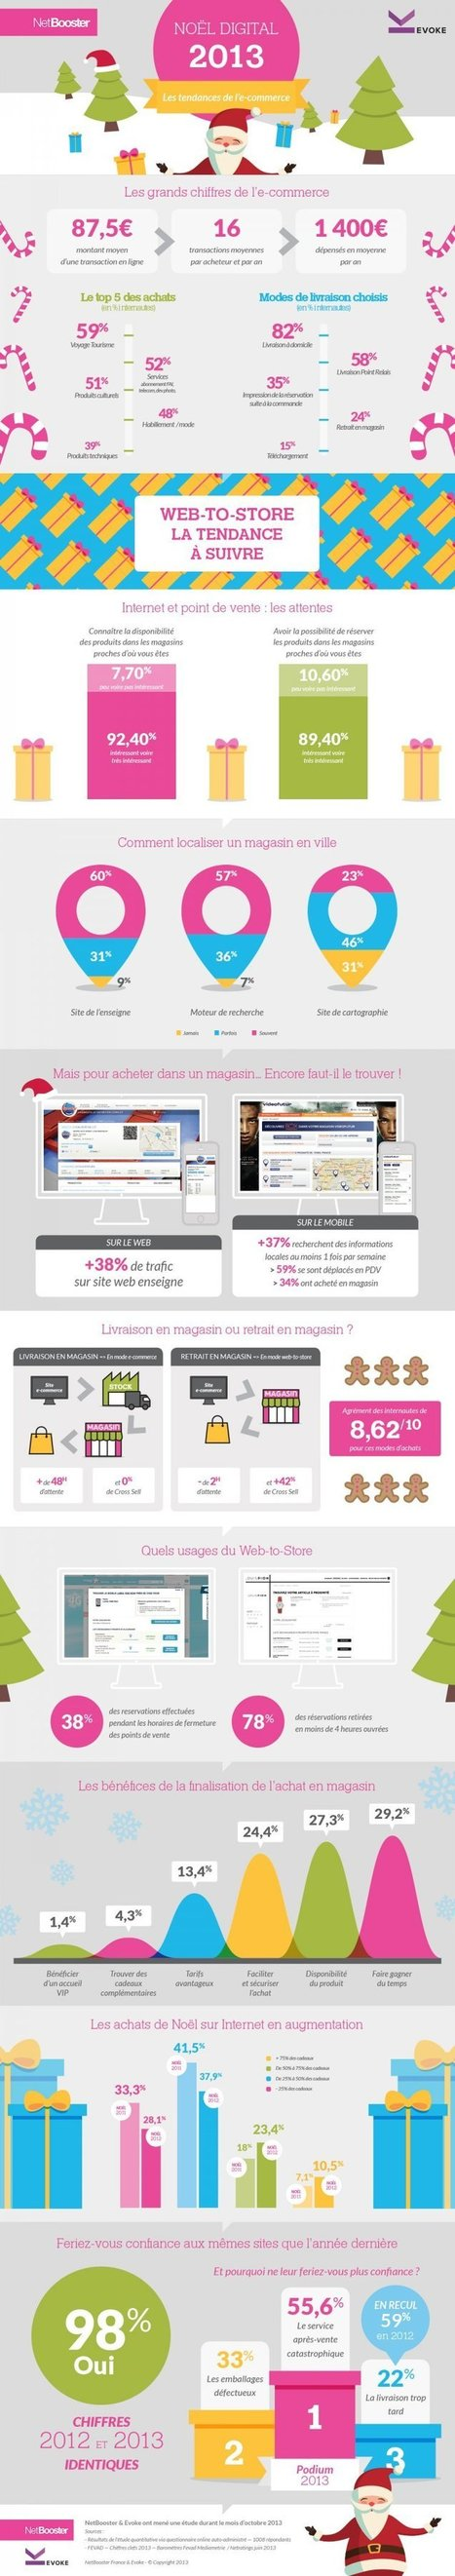 Infographie : les cyberacheteurs veulent du web-to-store à Noël | Infographies E-commerce | Scoop.it